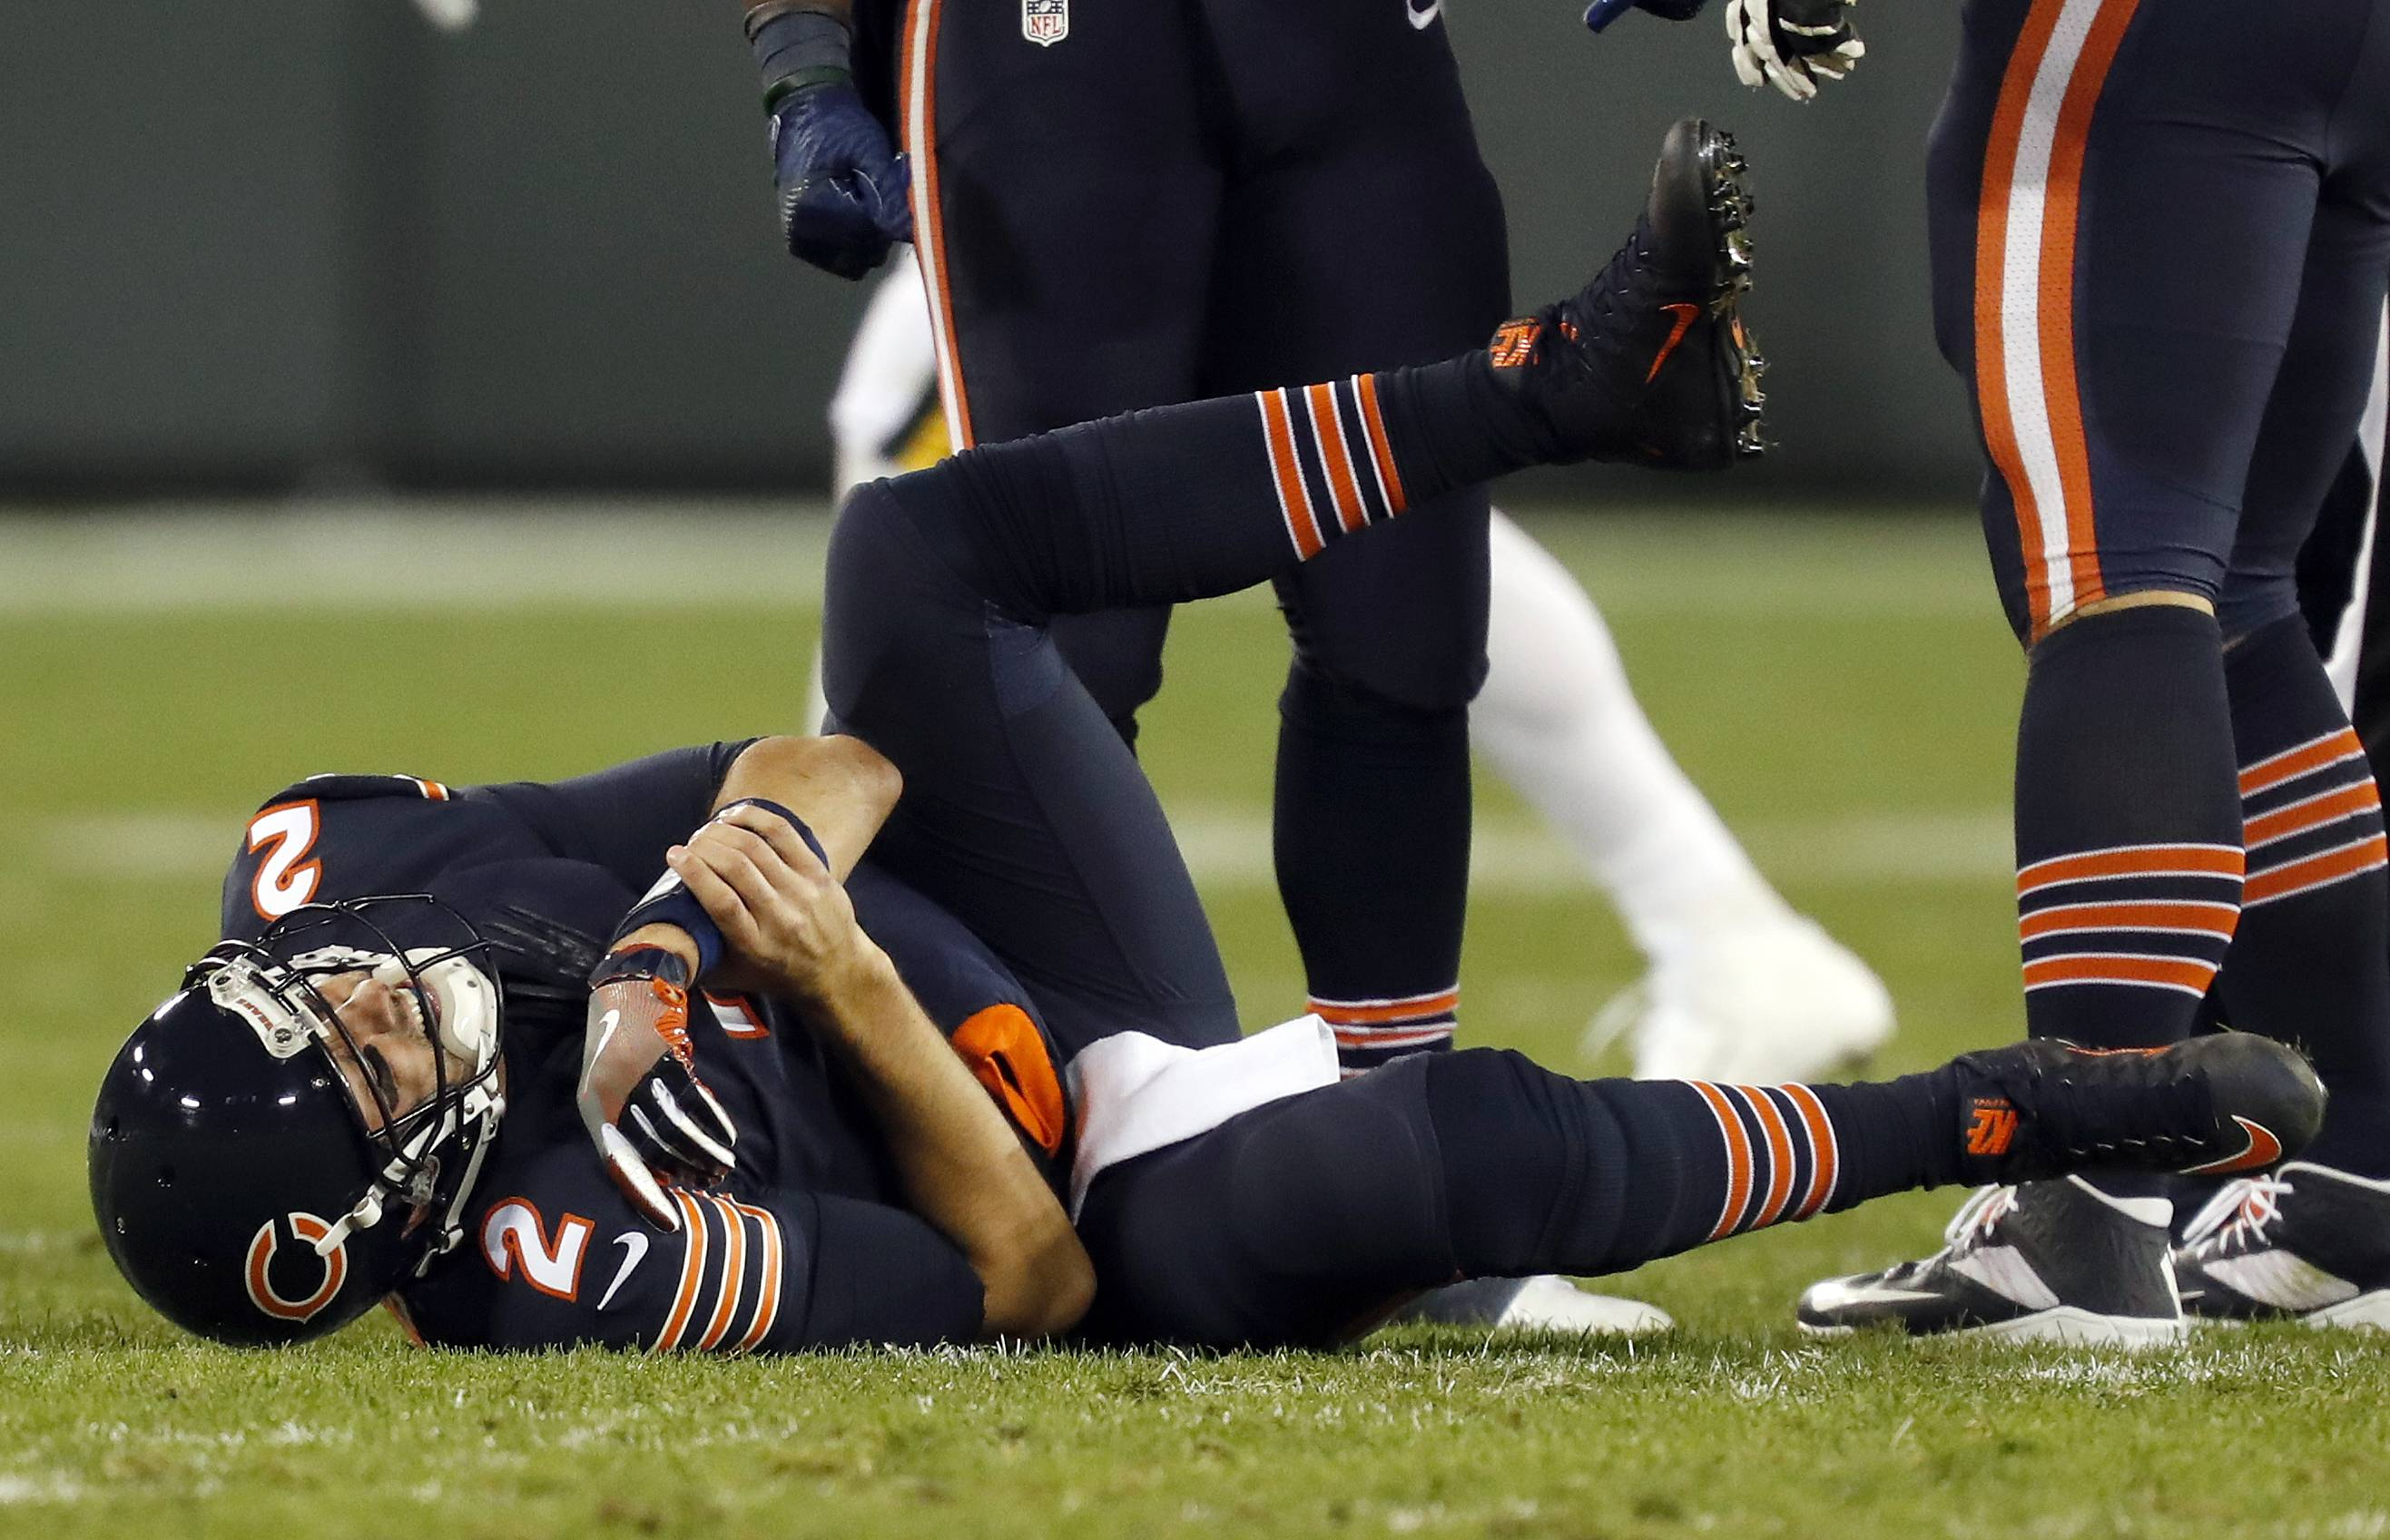 Chicago Bears quarterback Brian Hoyer (2) holds his arm after getting tackled between Green Bay Packers outside linebacker Clay Matthews (52) and outside linebacker Julius Peppers (56) as he throws the ball during the first half of an NFL football game, Thursday, Oct. 20, 2016, in Green Bay, Wis. Hoyer left the game after this play.